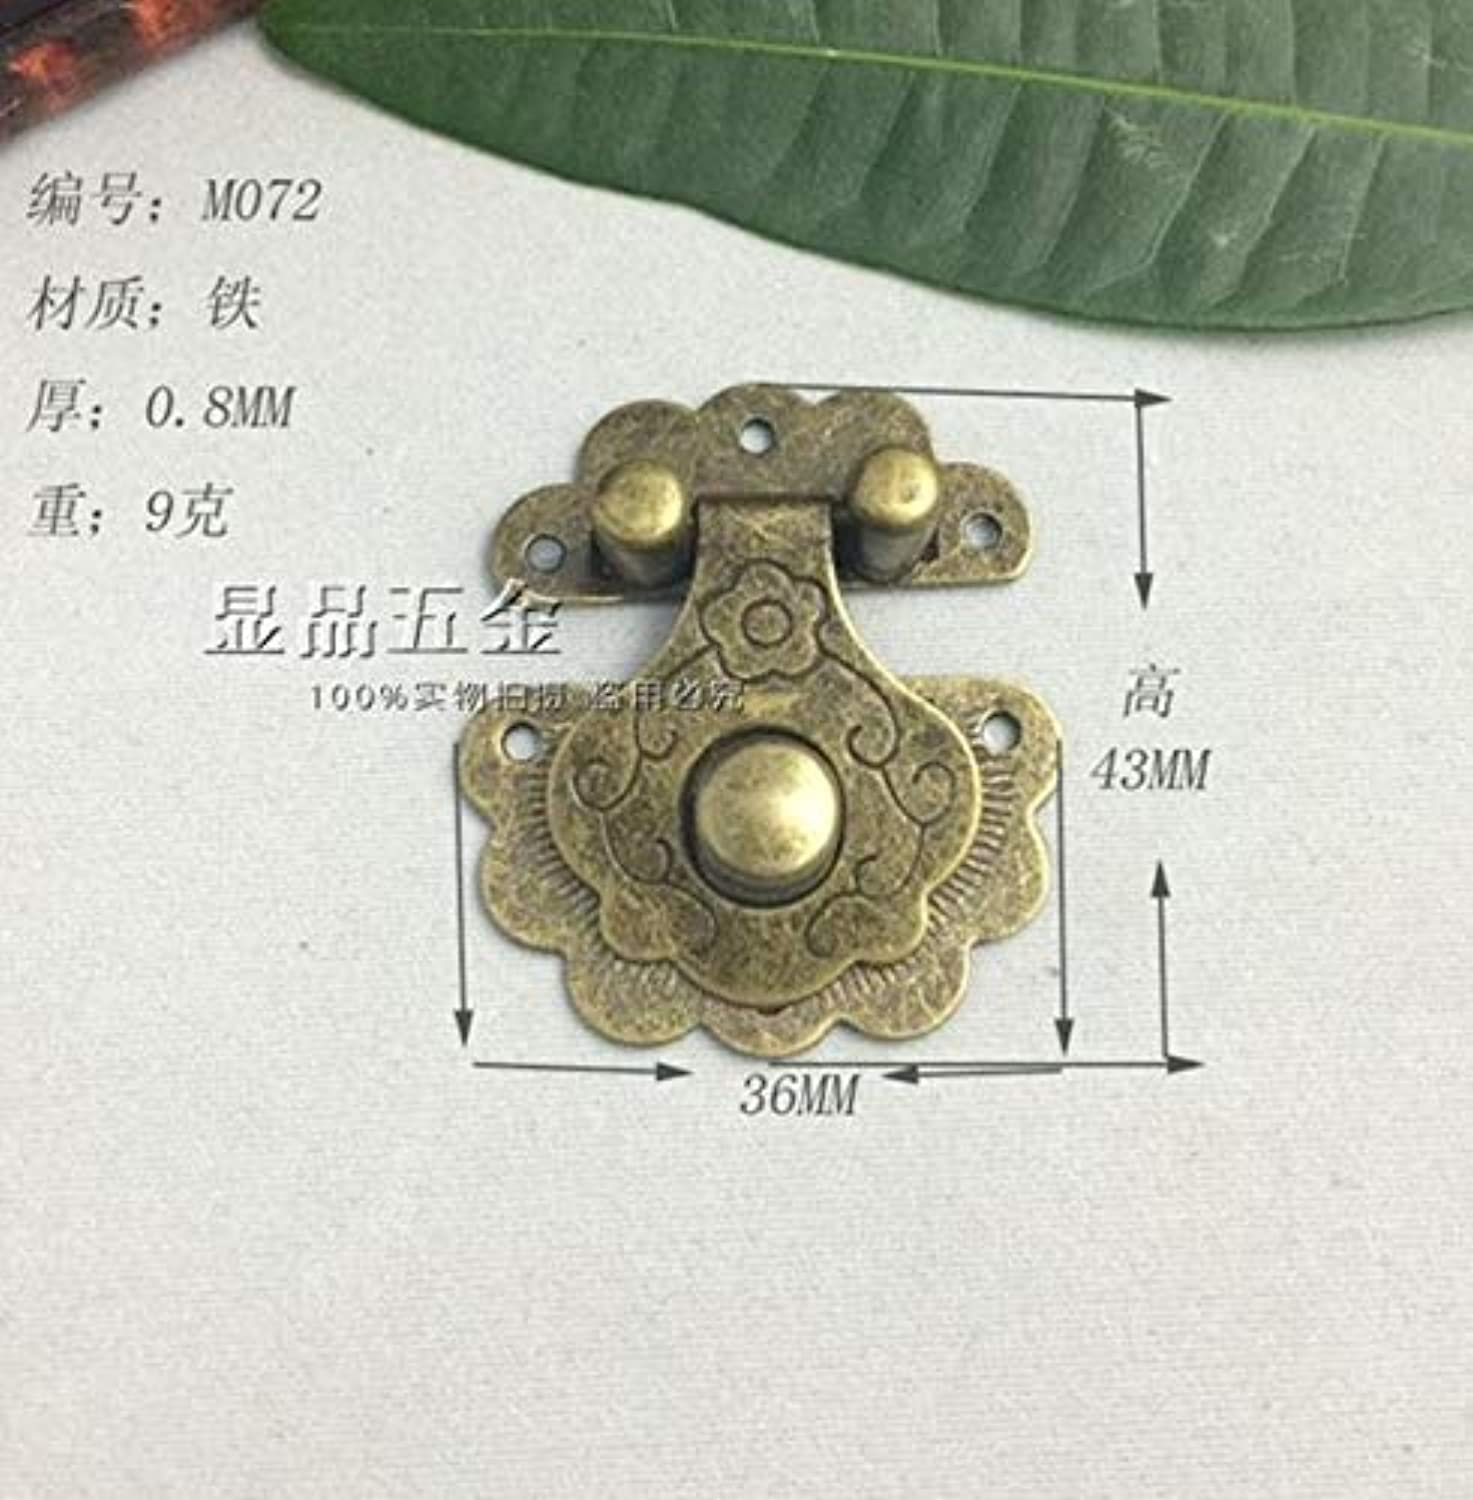 43  36mm Gift Buckle Gift hasp Decorative Buckle Hinge Buckle Wholesale  (color  Bronze)